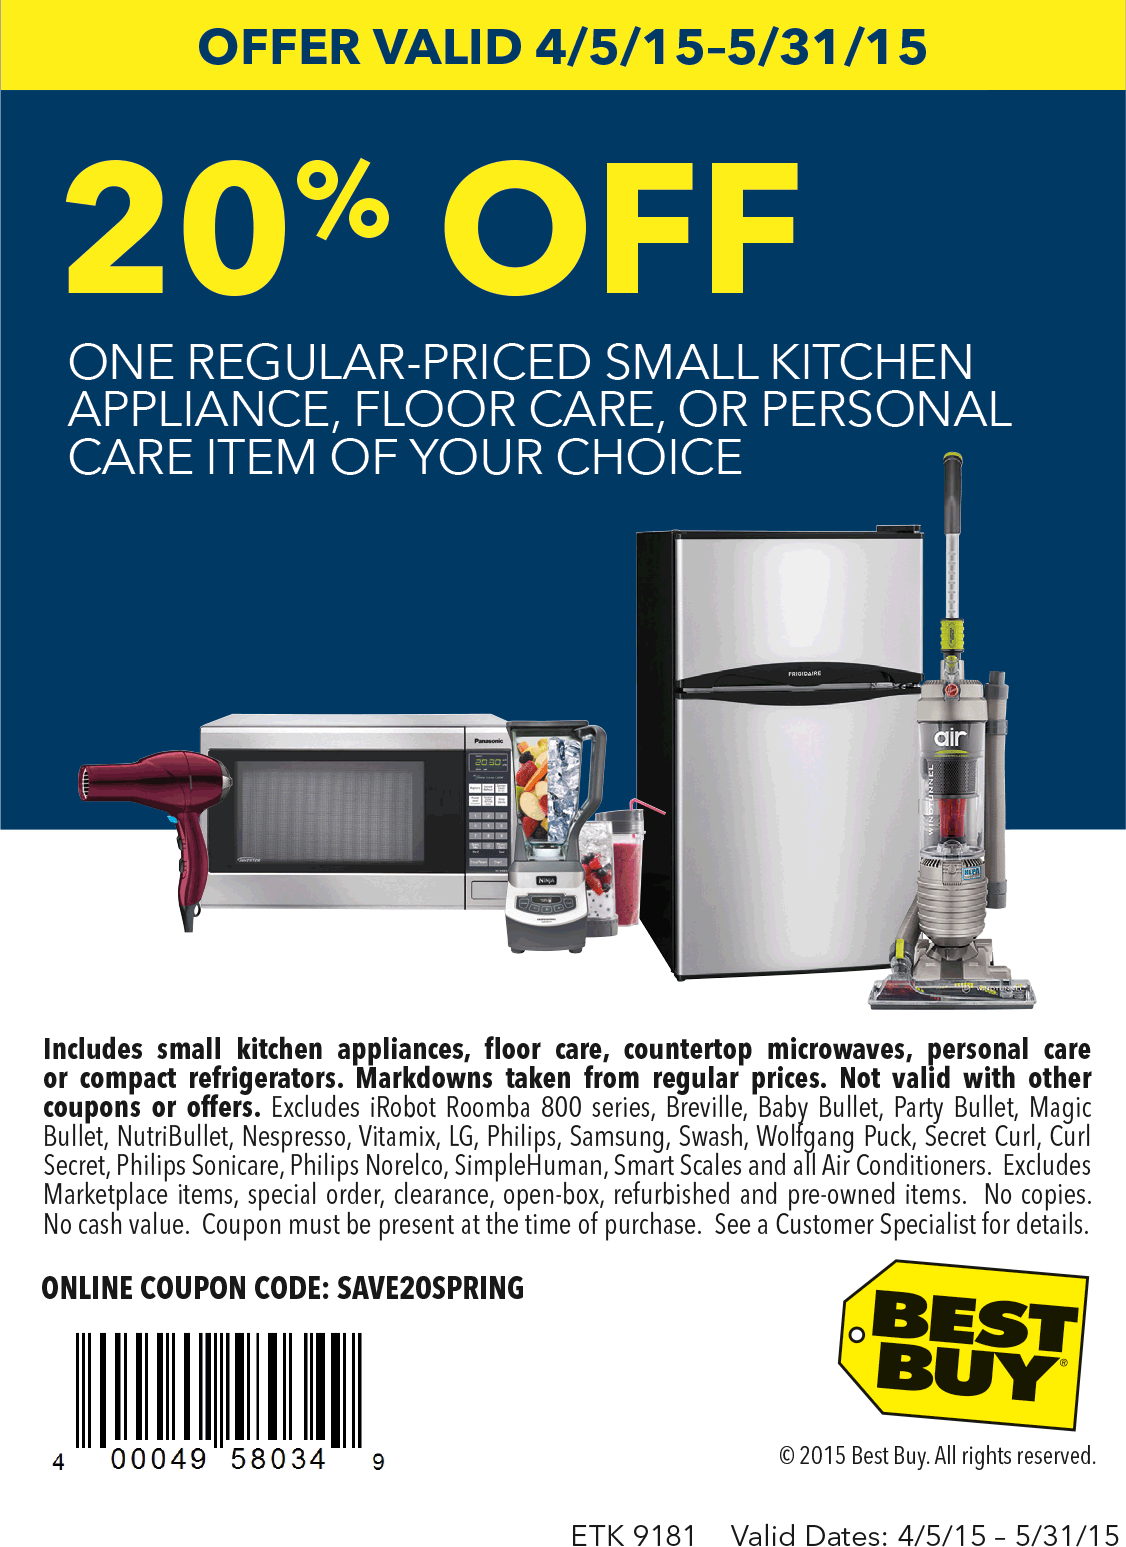 Best Buy Coupon March 2017 20% off a single appliance at Best Buy, or online via promo code SAVE20SPRING